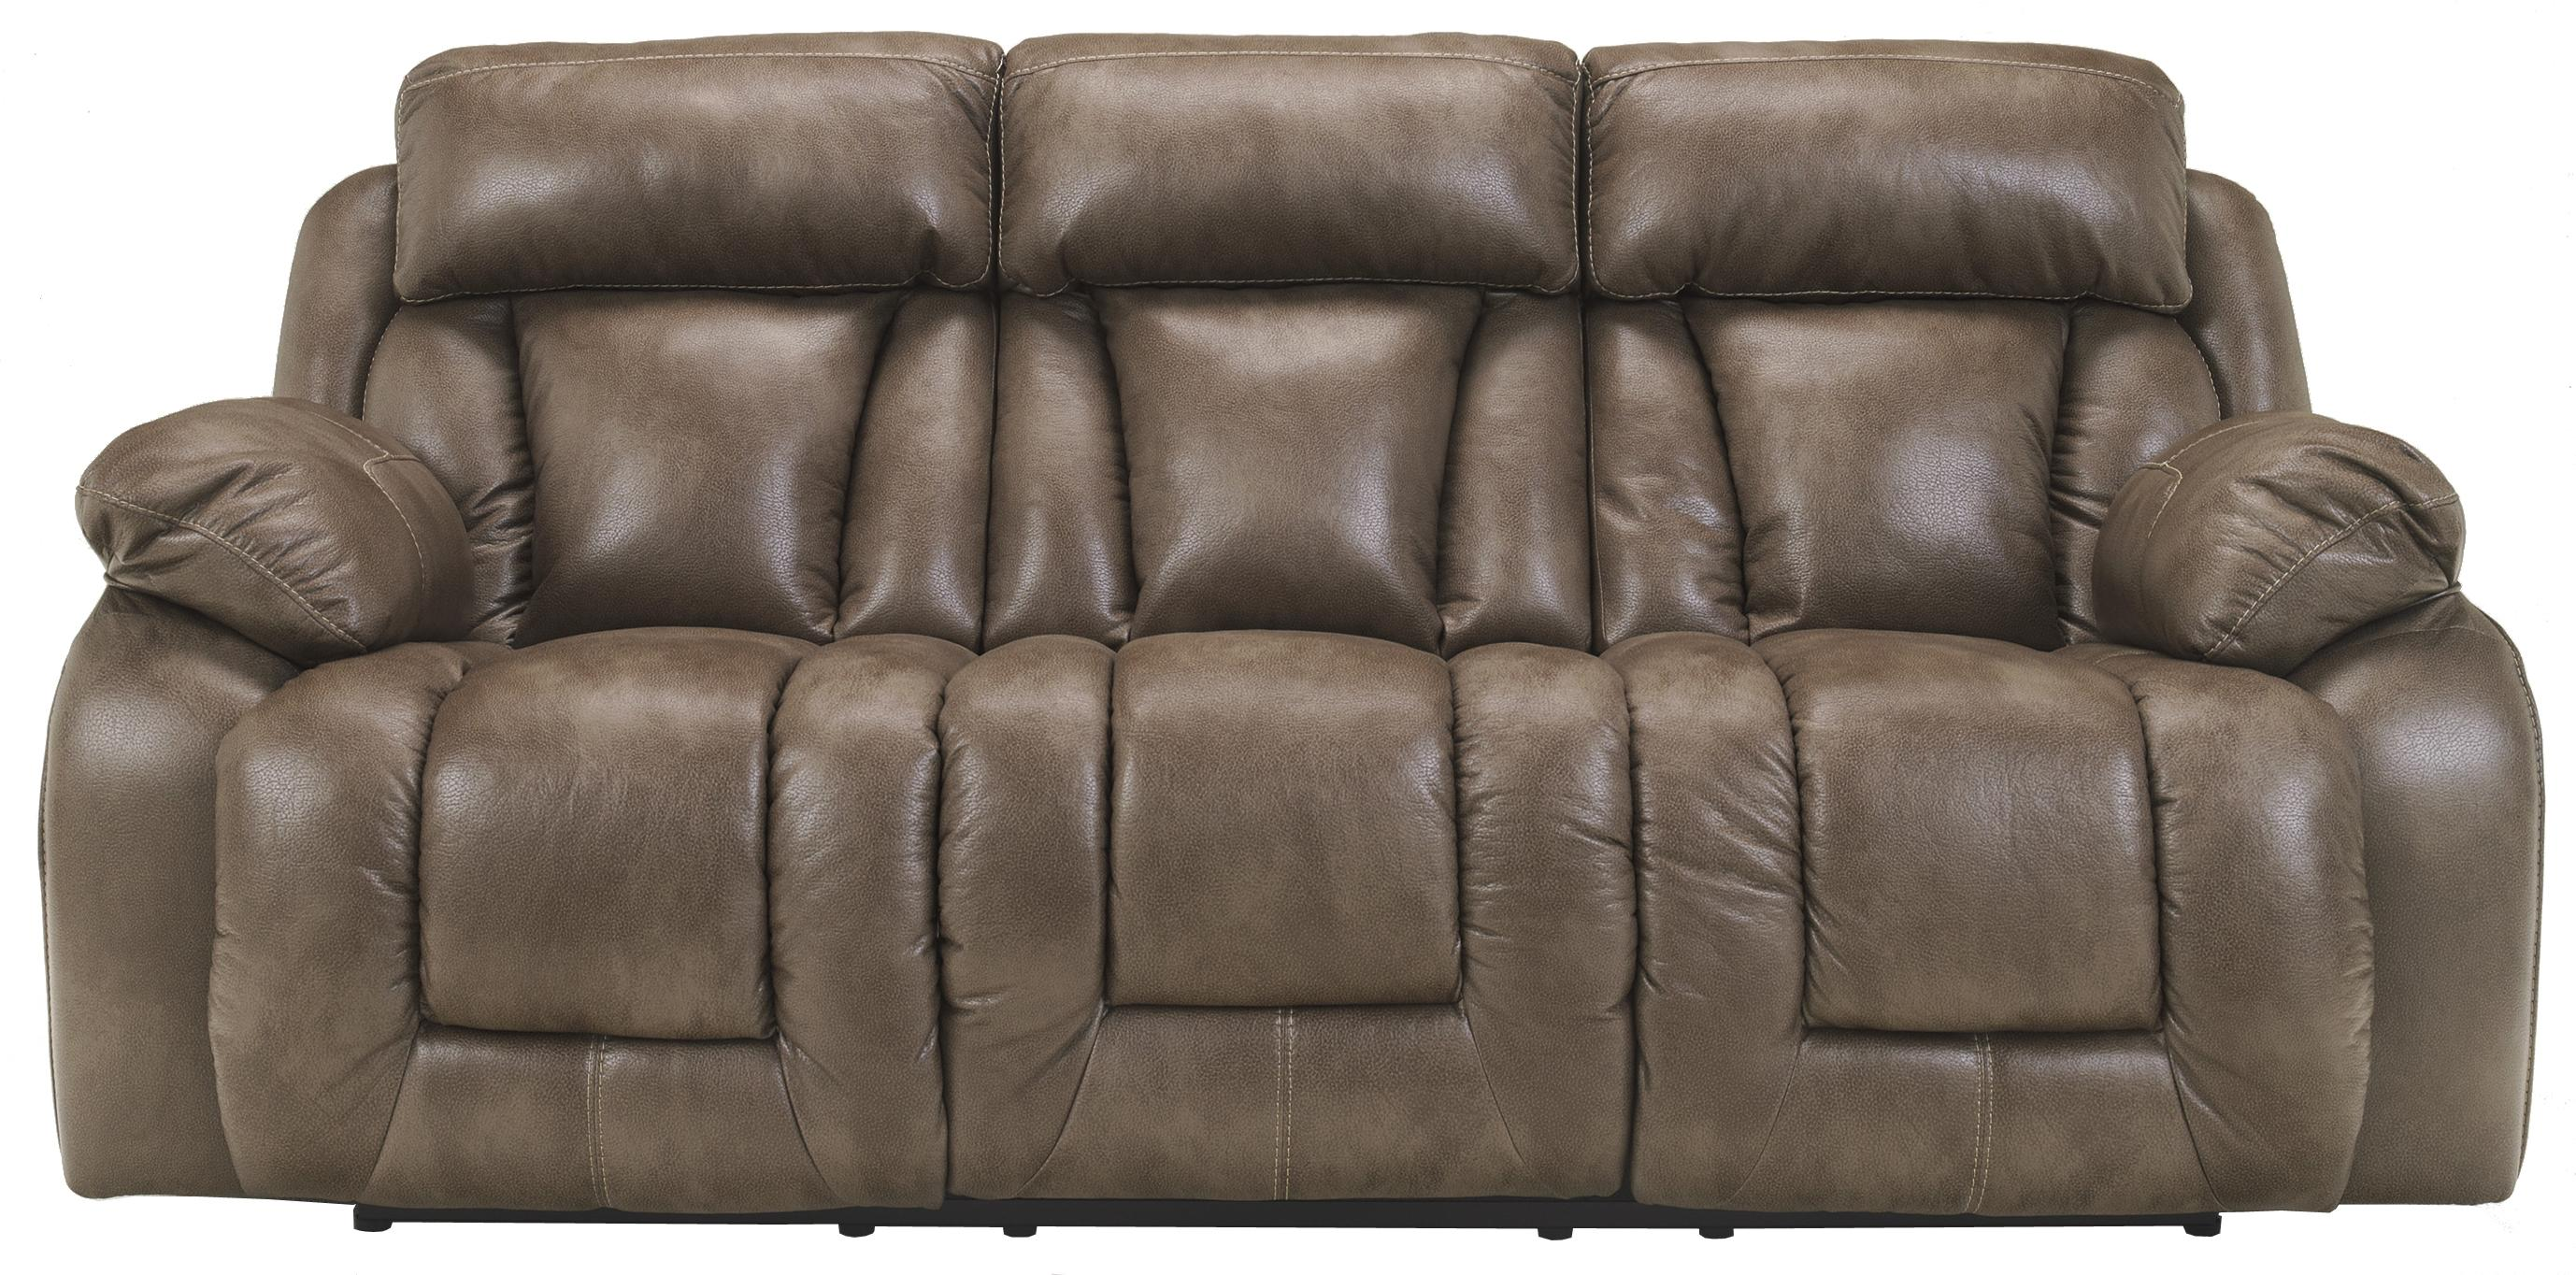 Ashley Furniture Loral - Sable Reclining Sofa - Item Number: 4220088